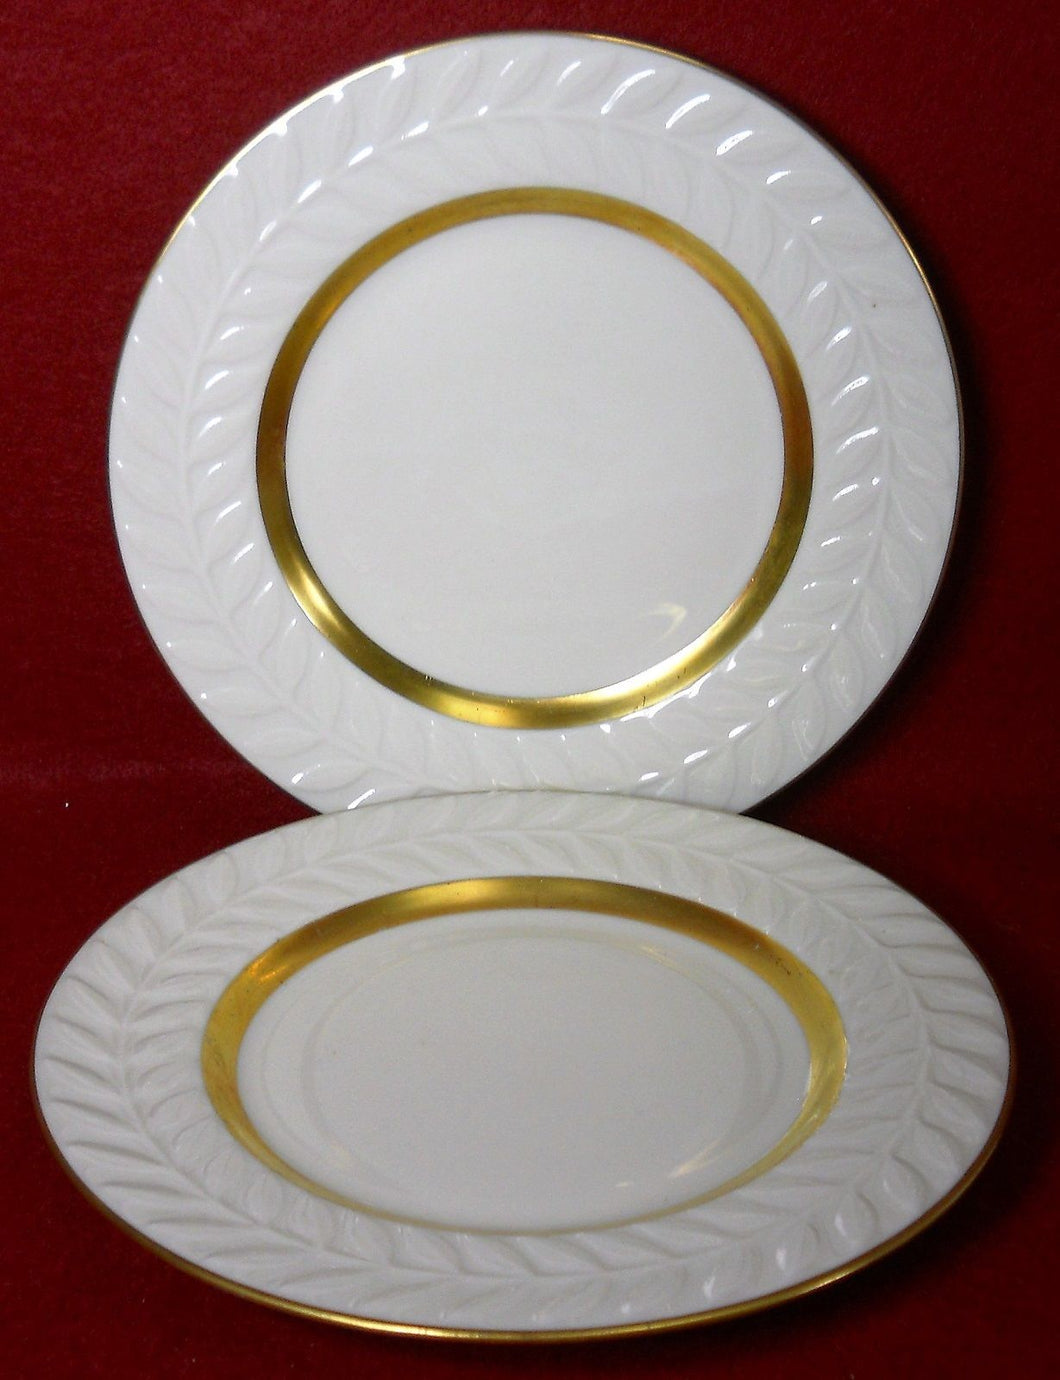 HAVILAND china EMBASSY pattern BREAD PLATE - Set of Two (2) - 6-1/2